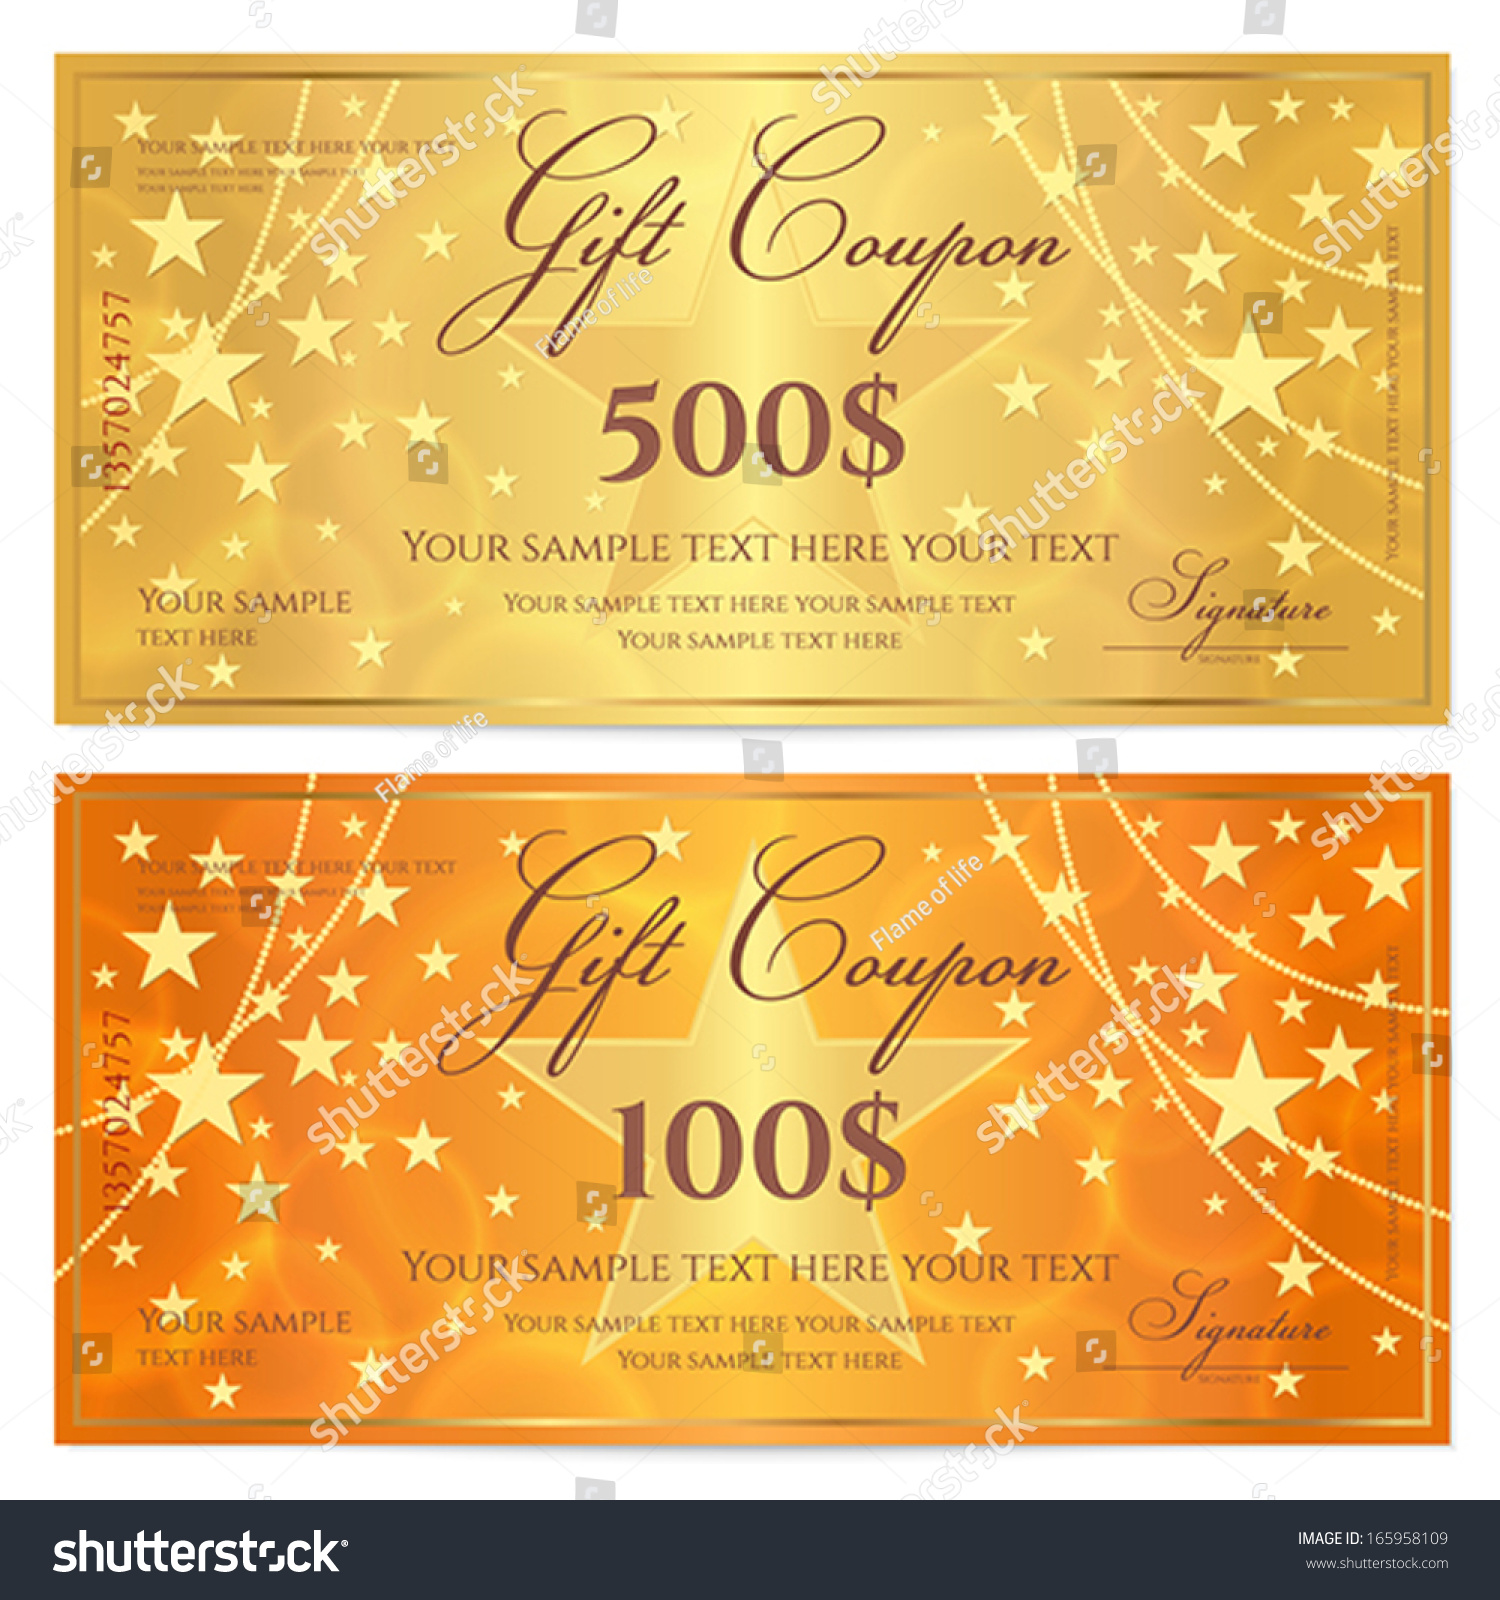 Gift Certificate Voucher Coupon Template Stars Stock ...